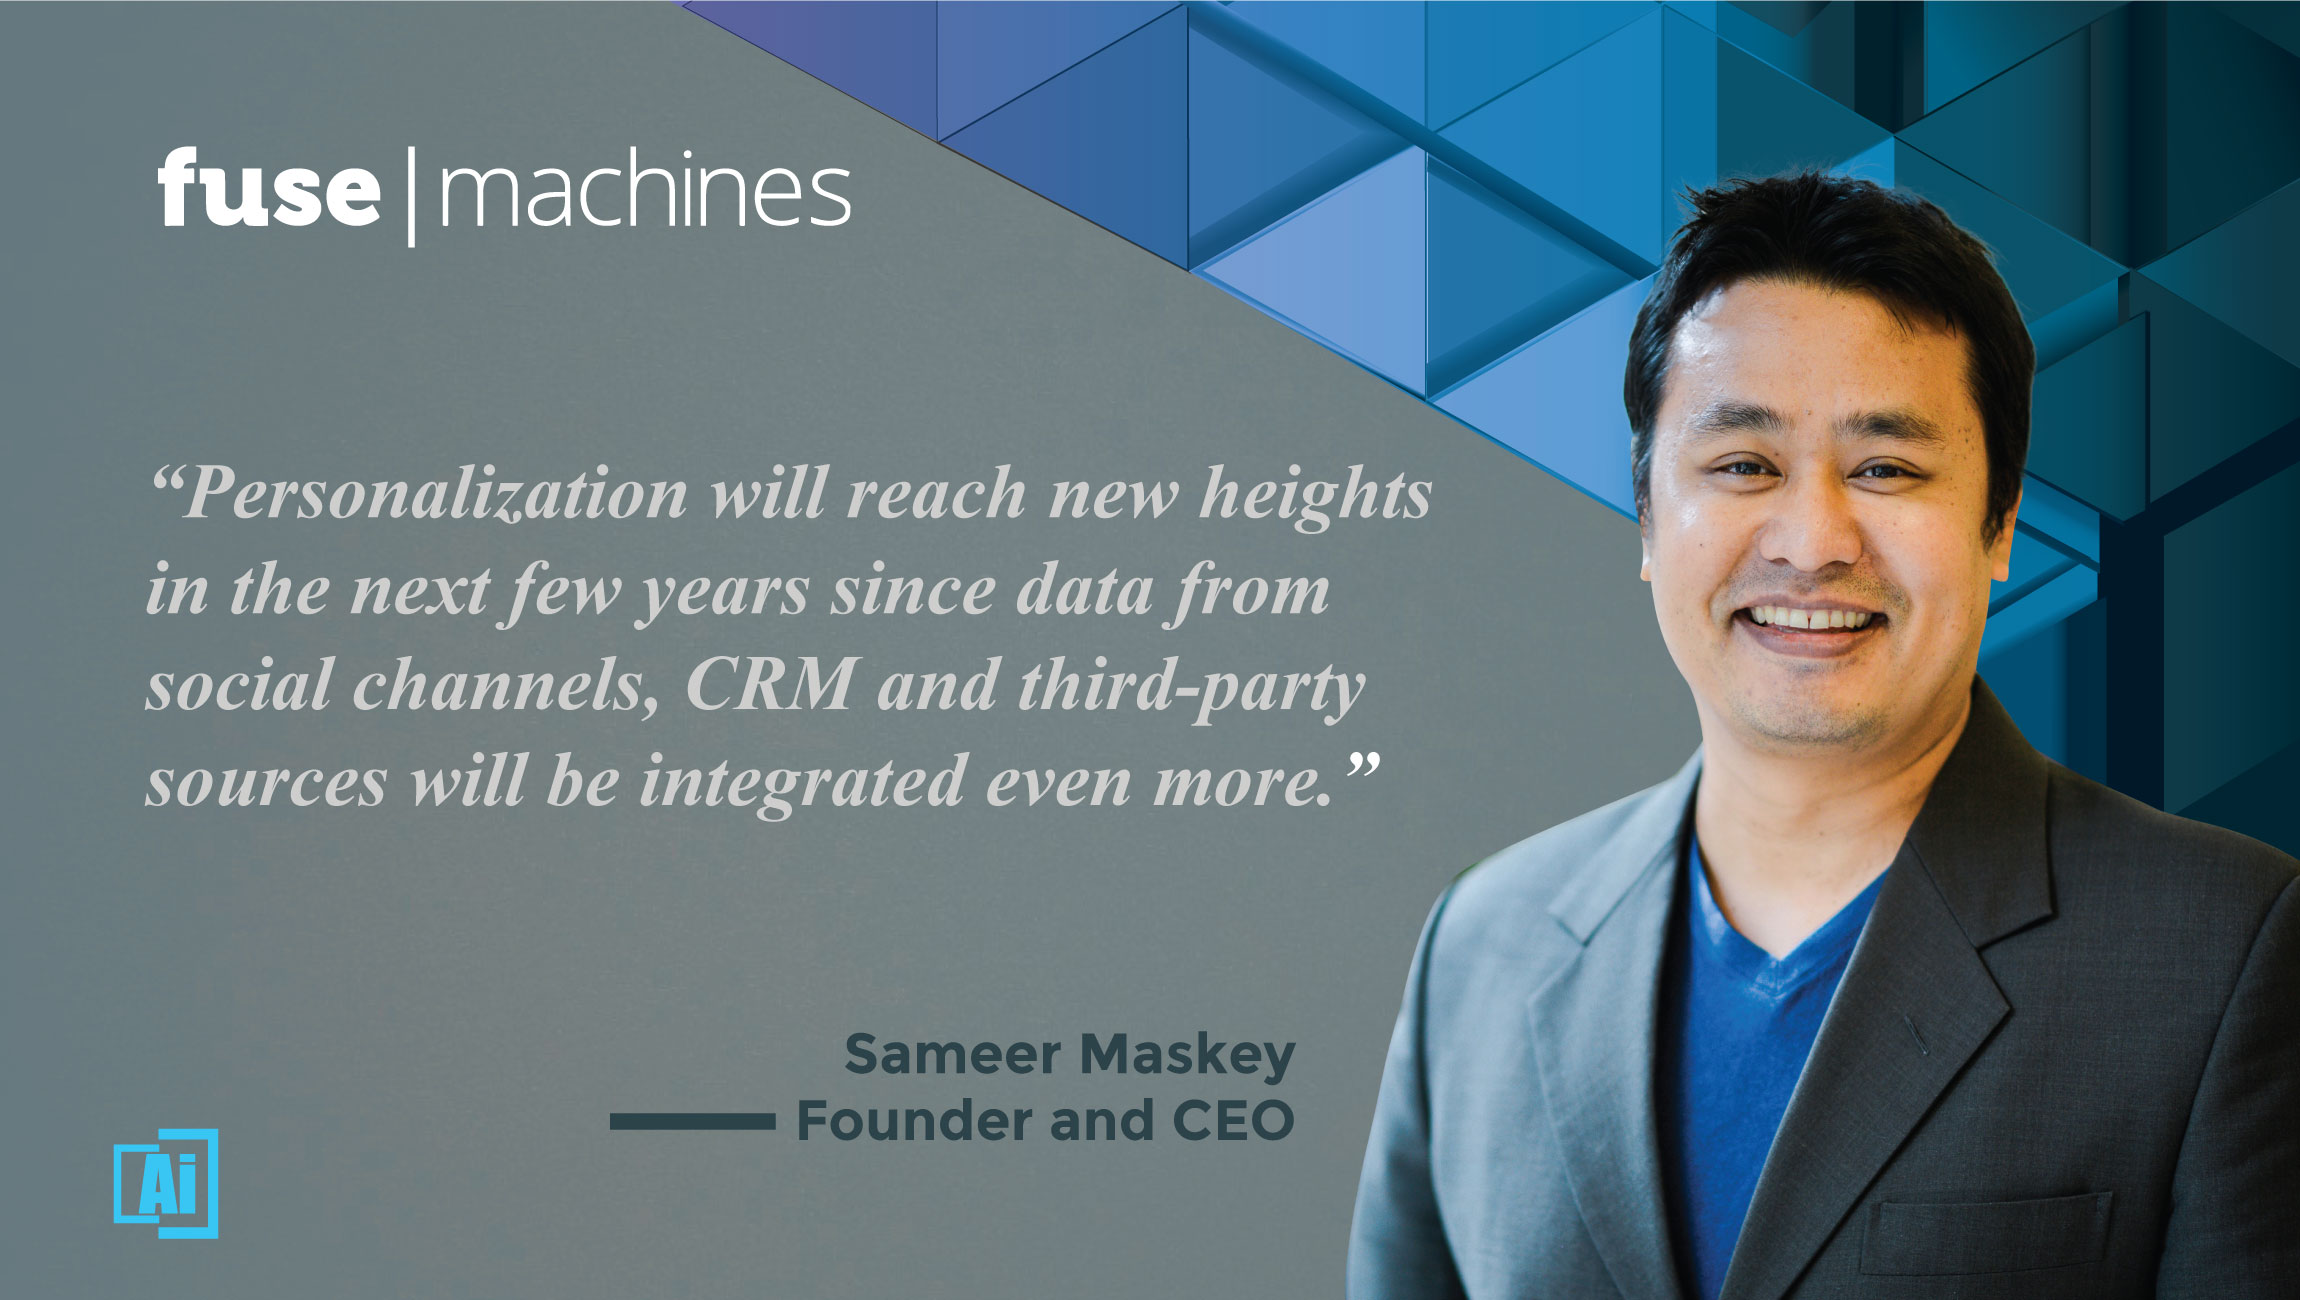 Weaponization of AI Is a Real Threat, Says Fusemachines CEO Sameer Maskey quotes